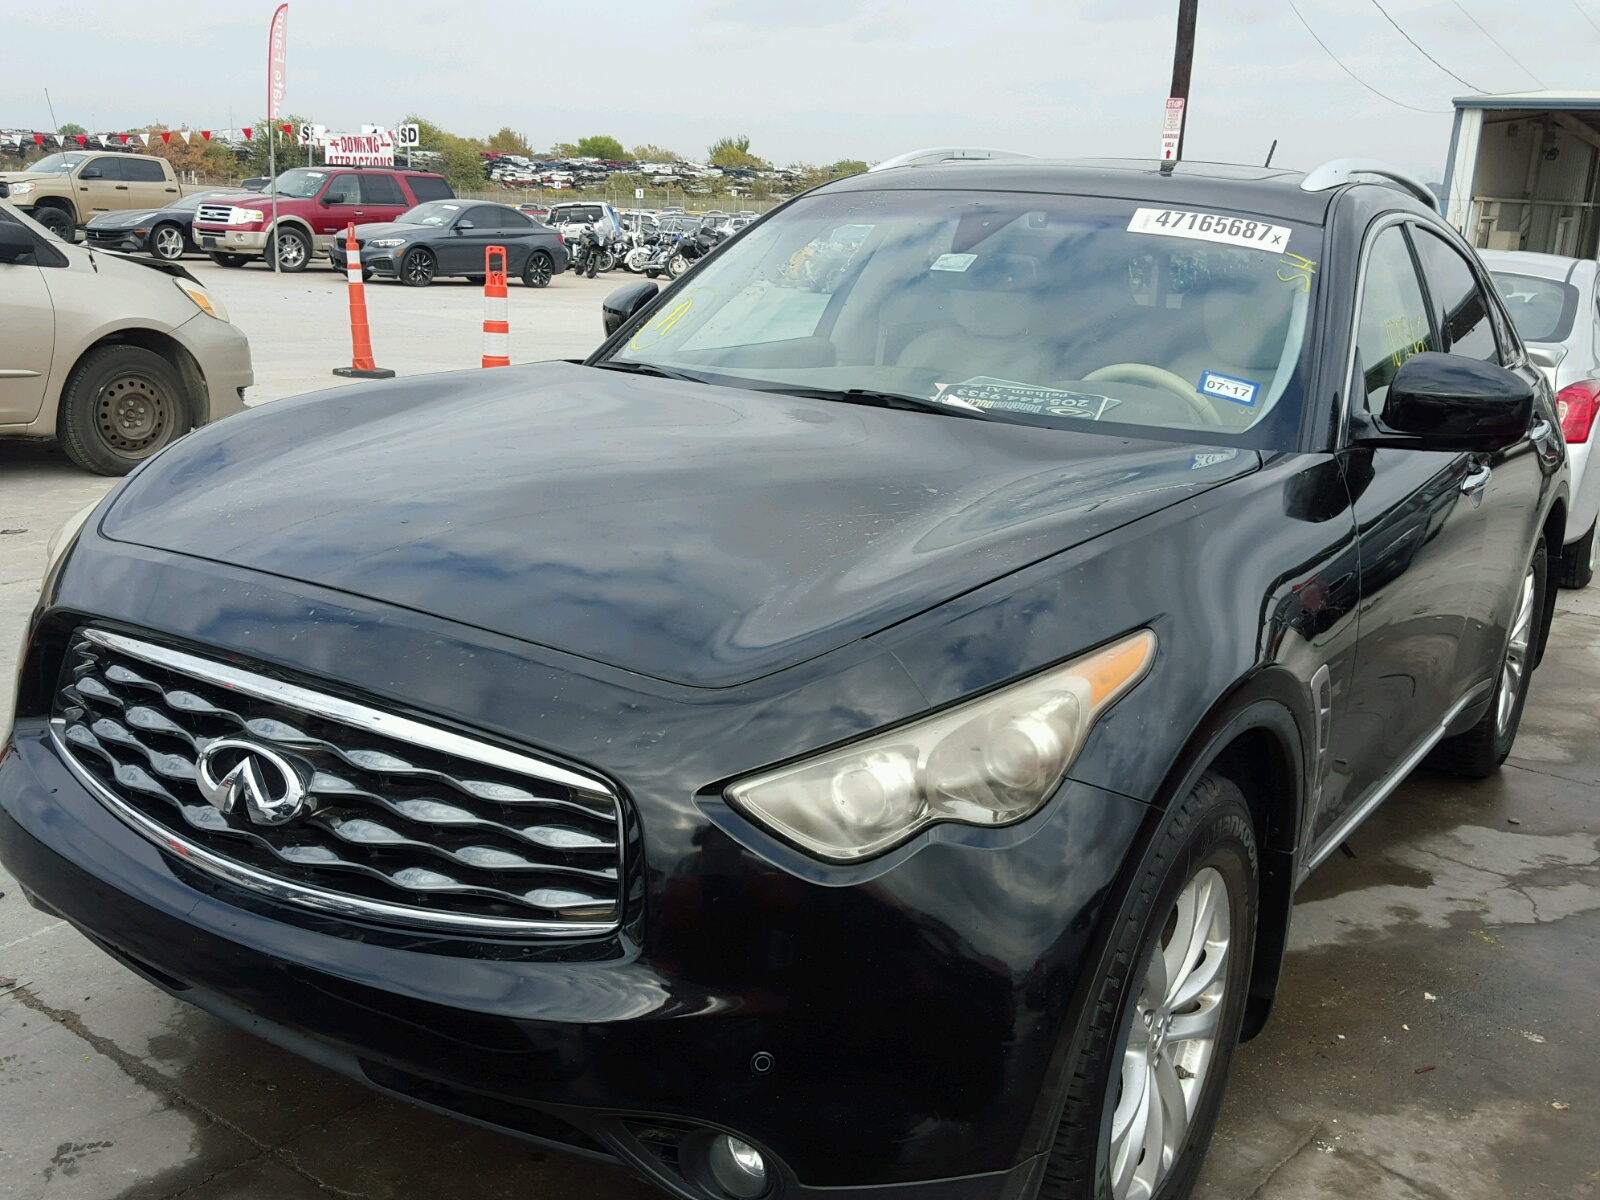 awd bos infiniti auto full listings img